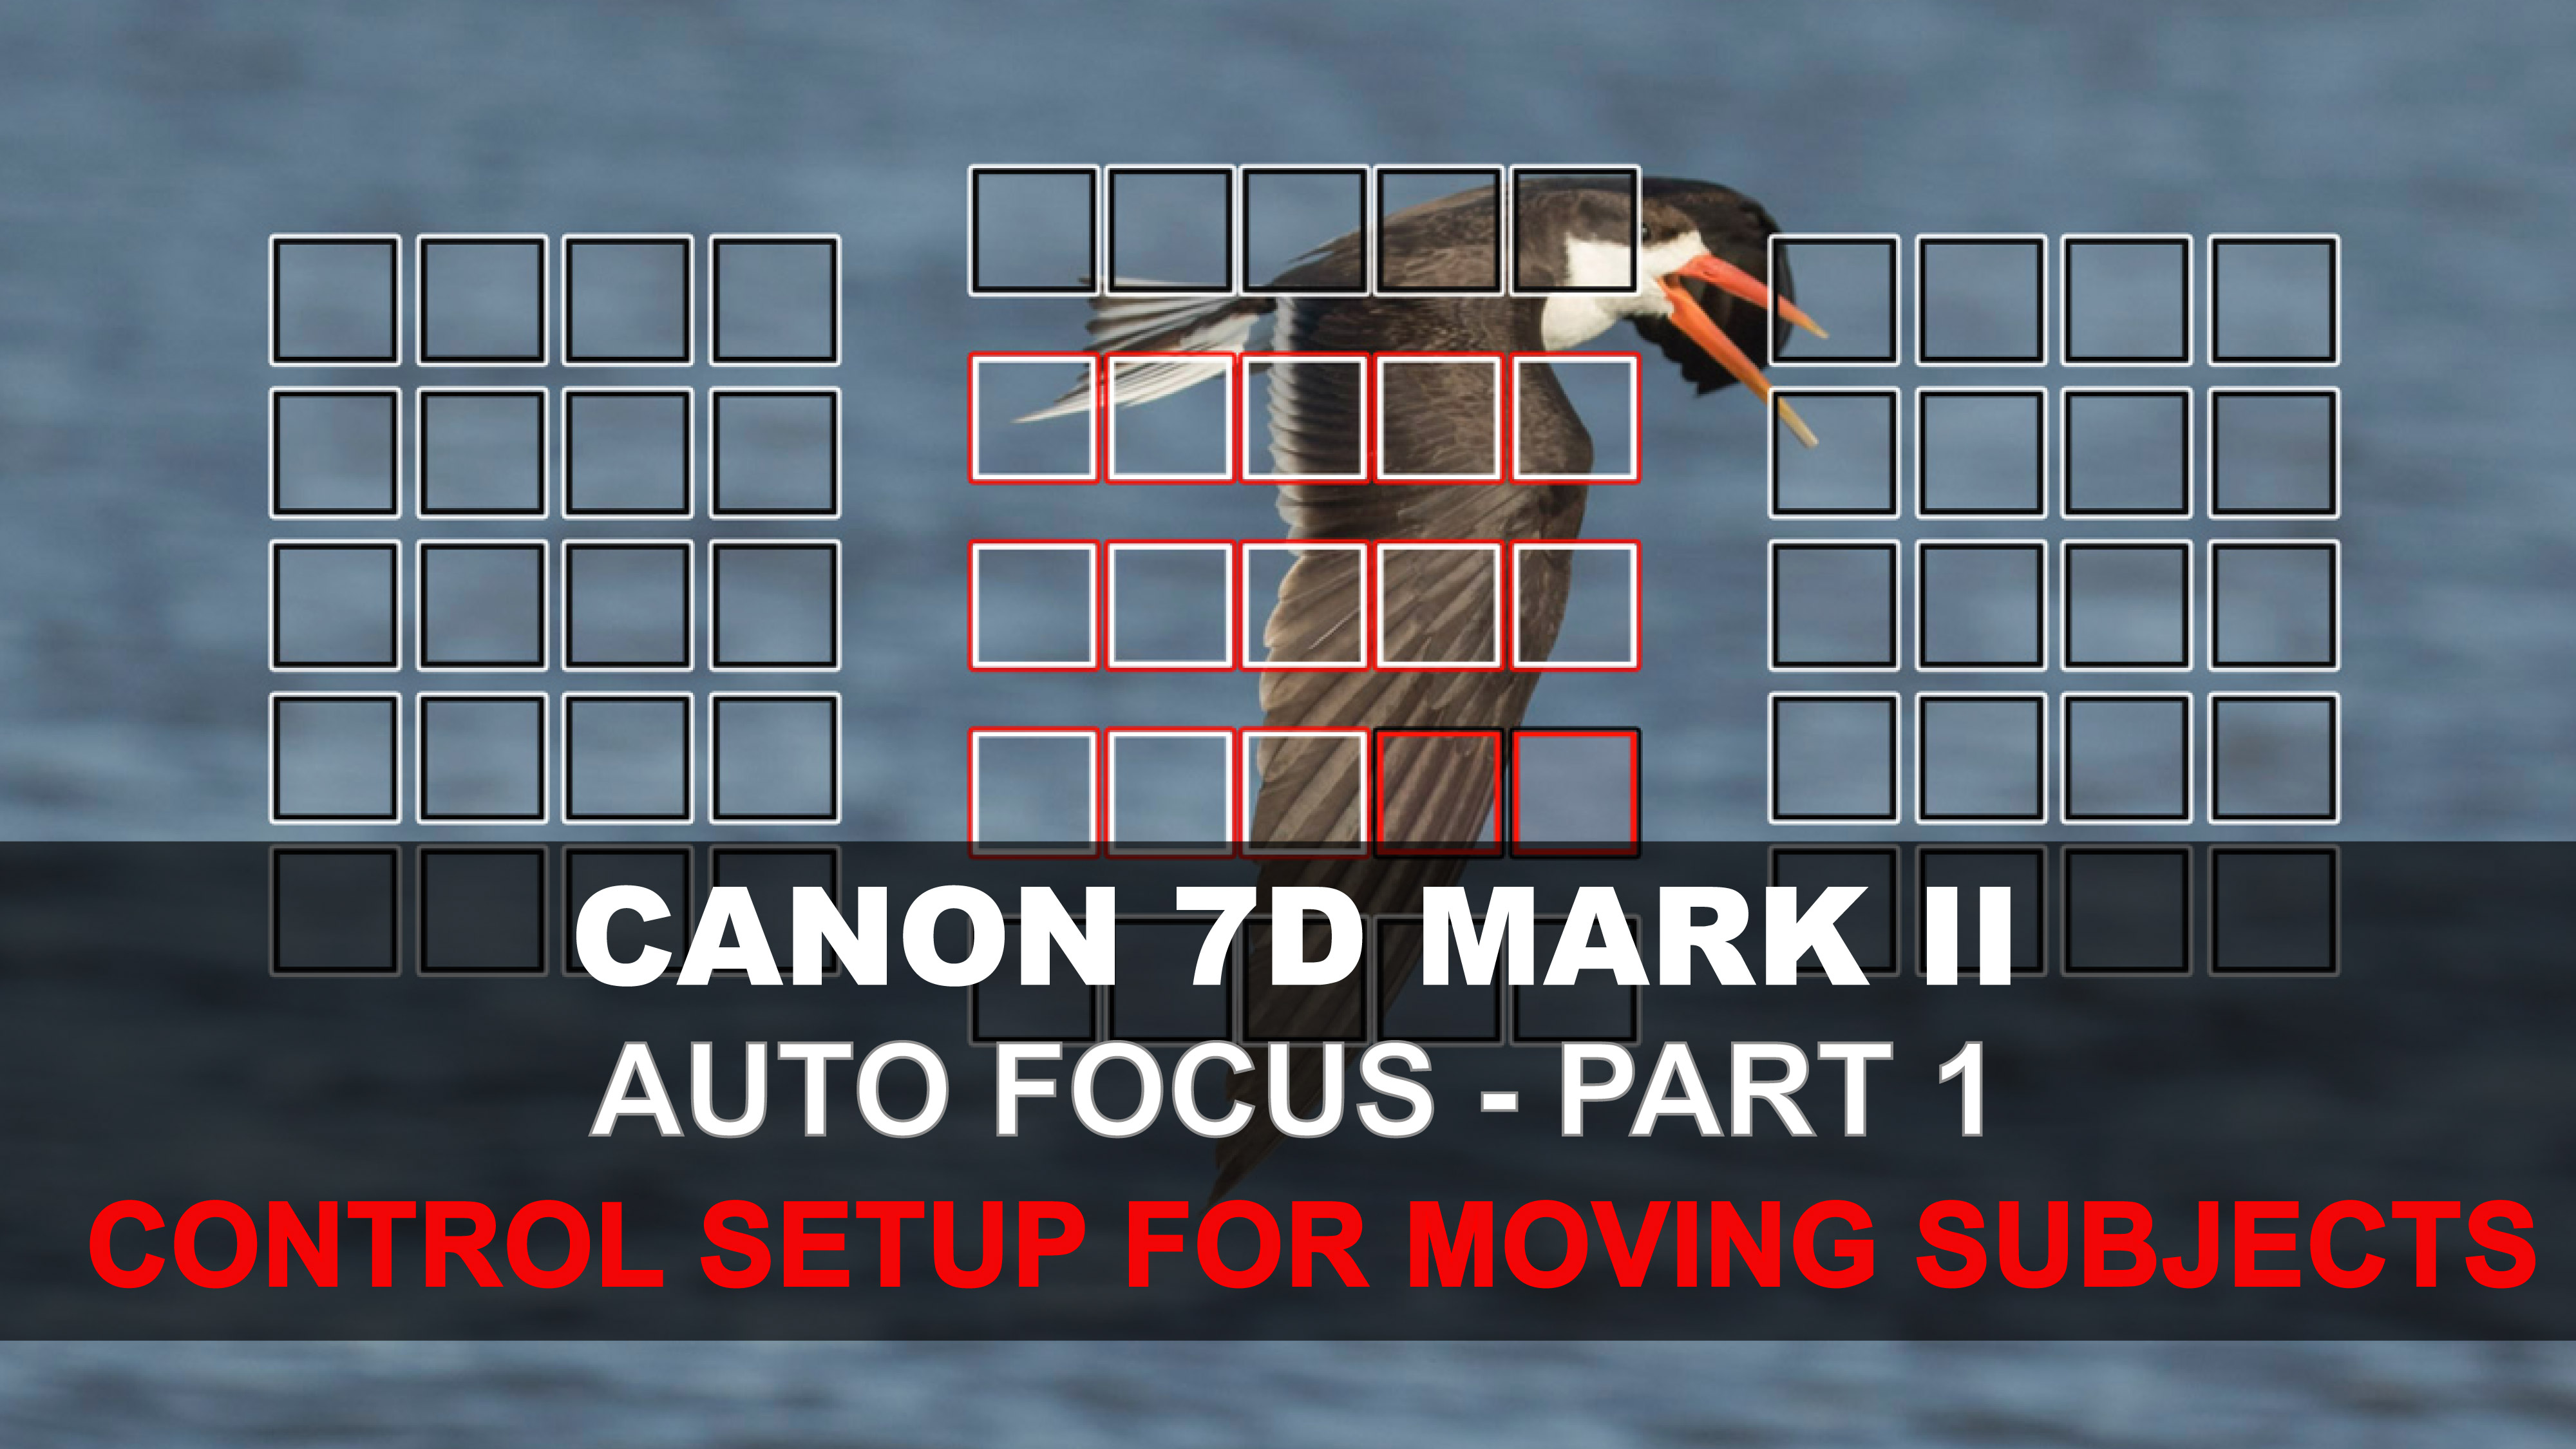 Canon 7d mark ii auto focus pt 1 setting up the camera controls.